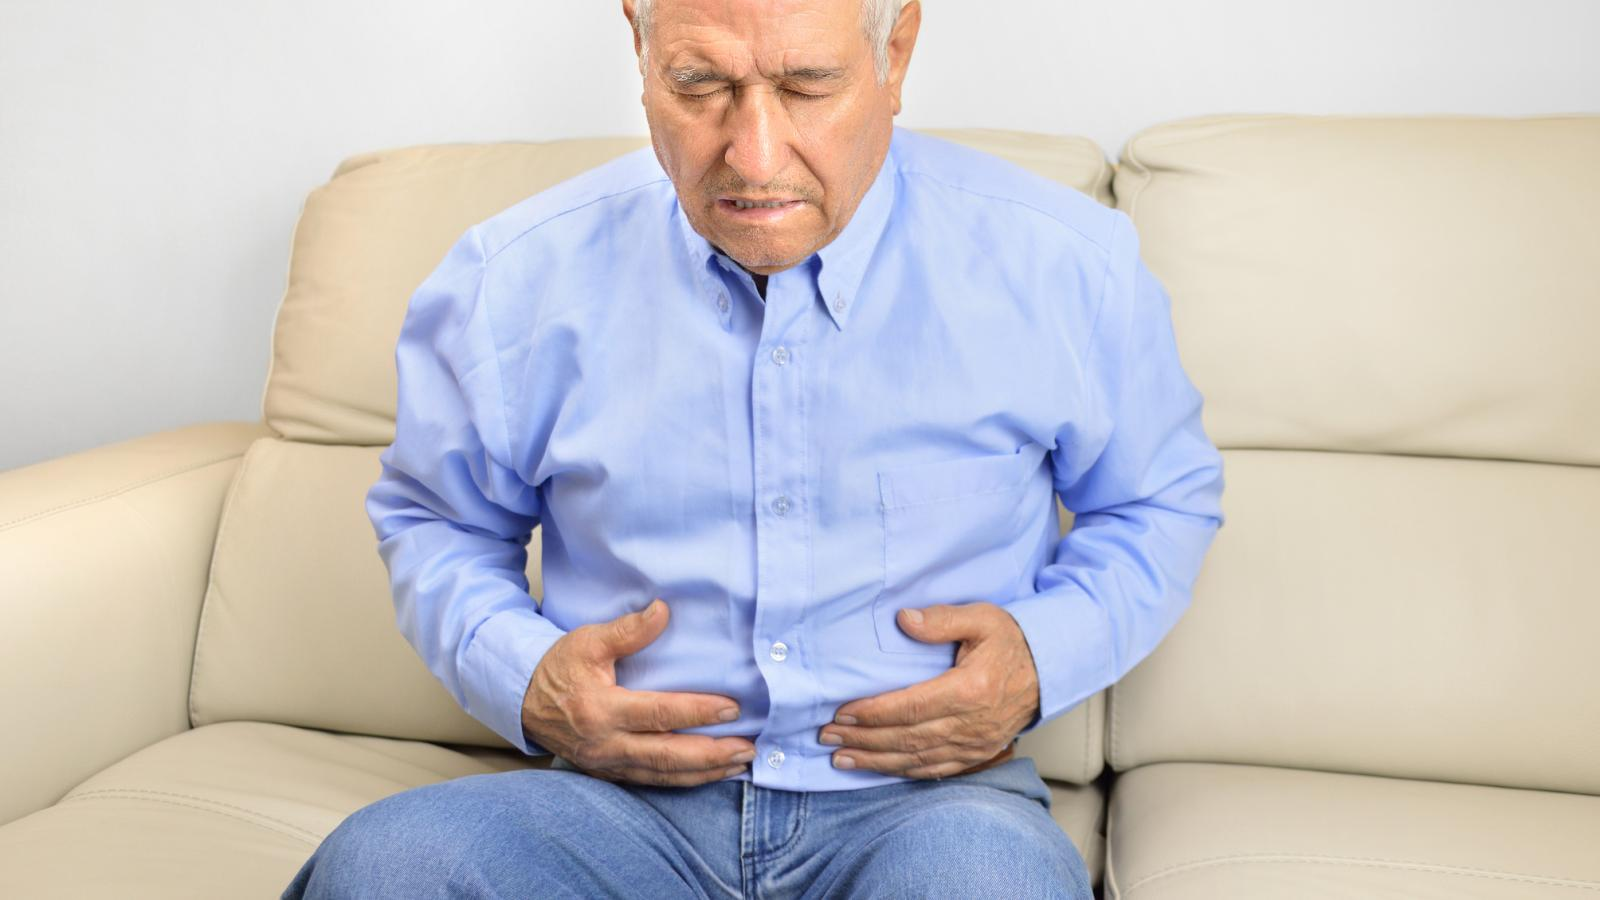 Older man holding his stomach in pain